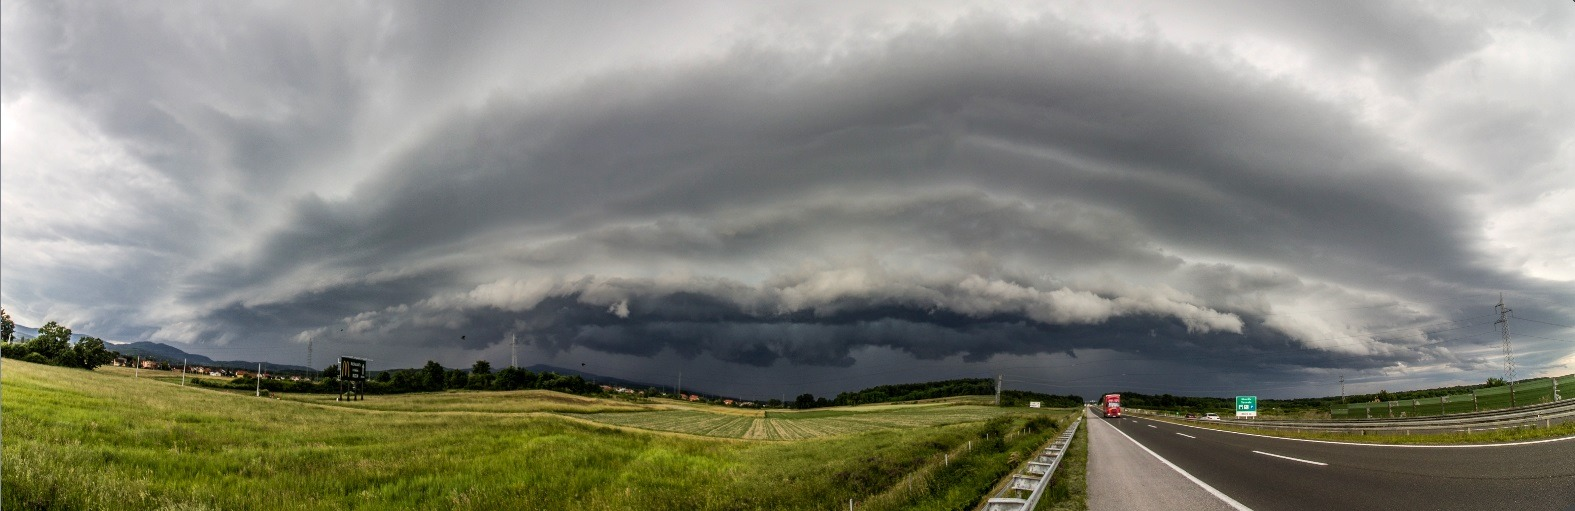 shelf cloud okolica zagreba 3.6.2020 kristijan cizerl 1